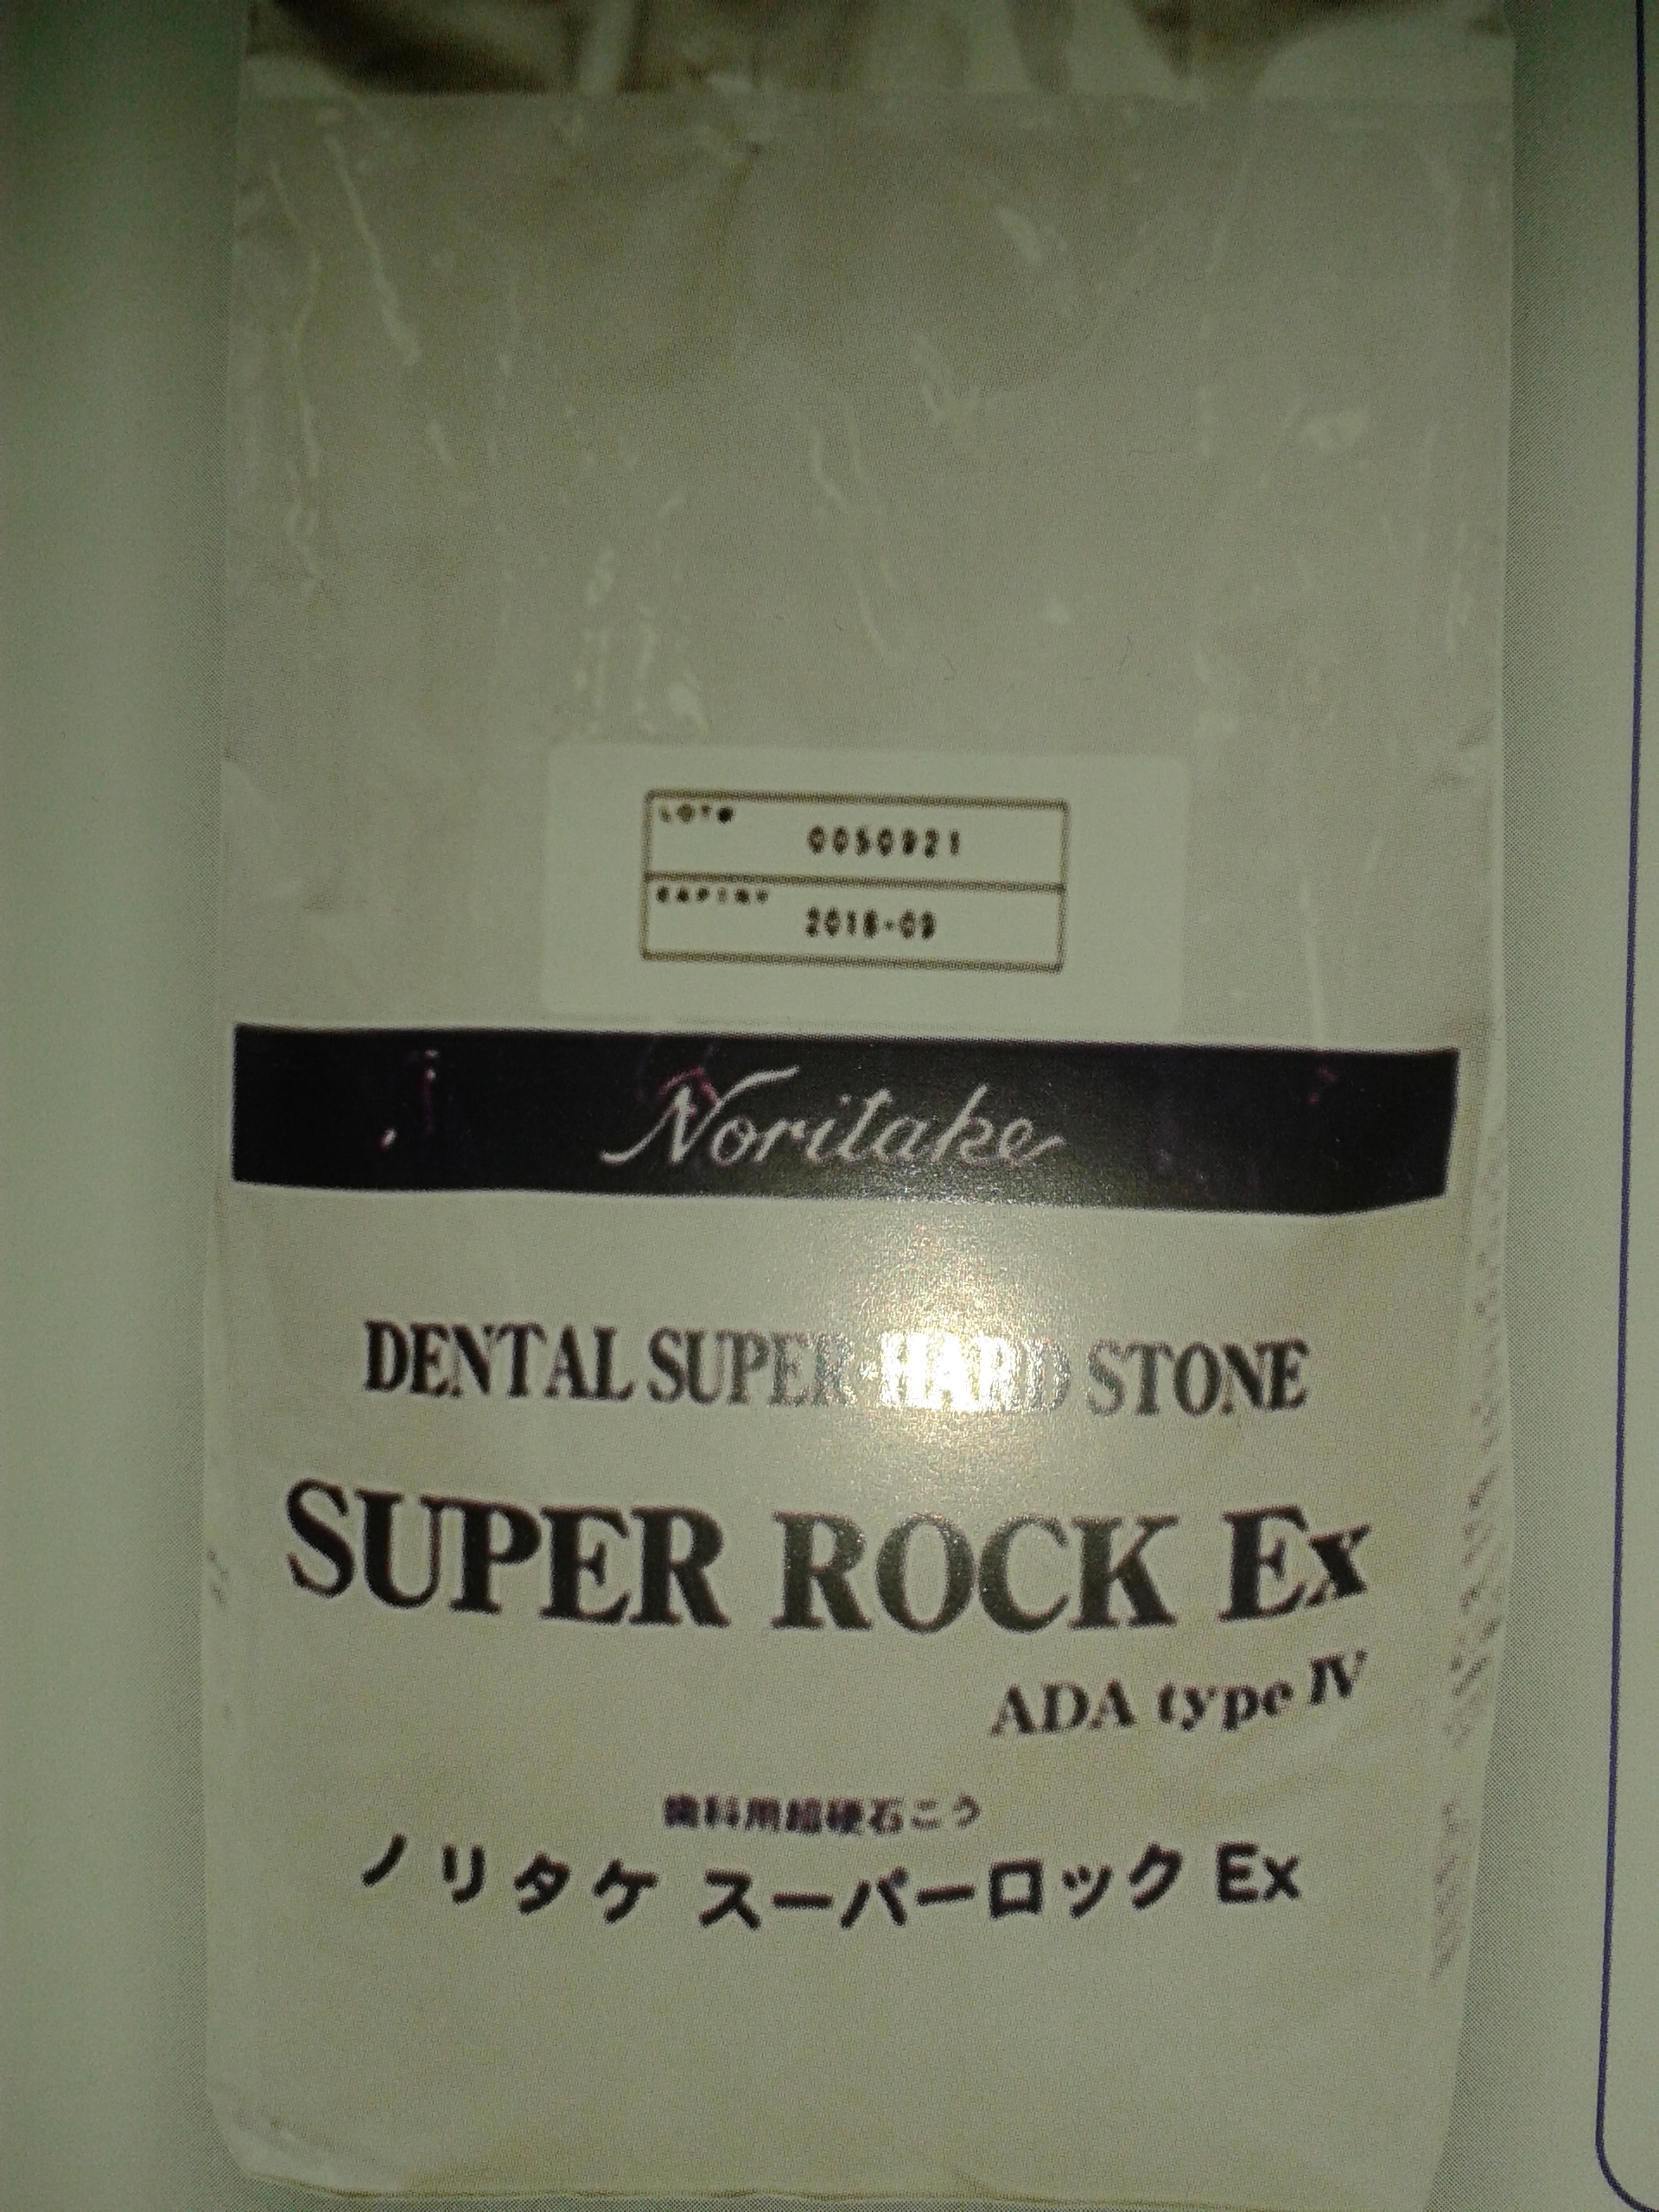 Super Rock EX тип IV - гипс 4 класса, 3кг